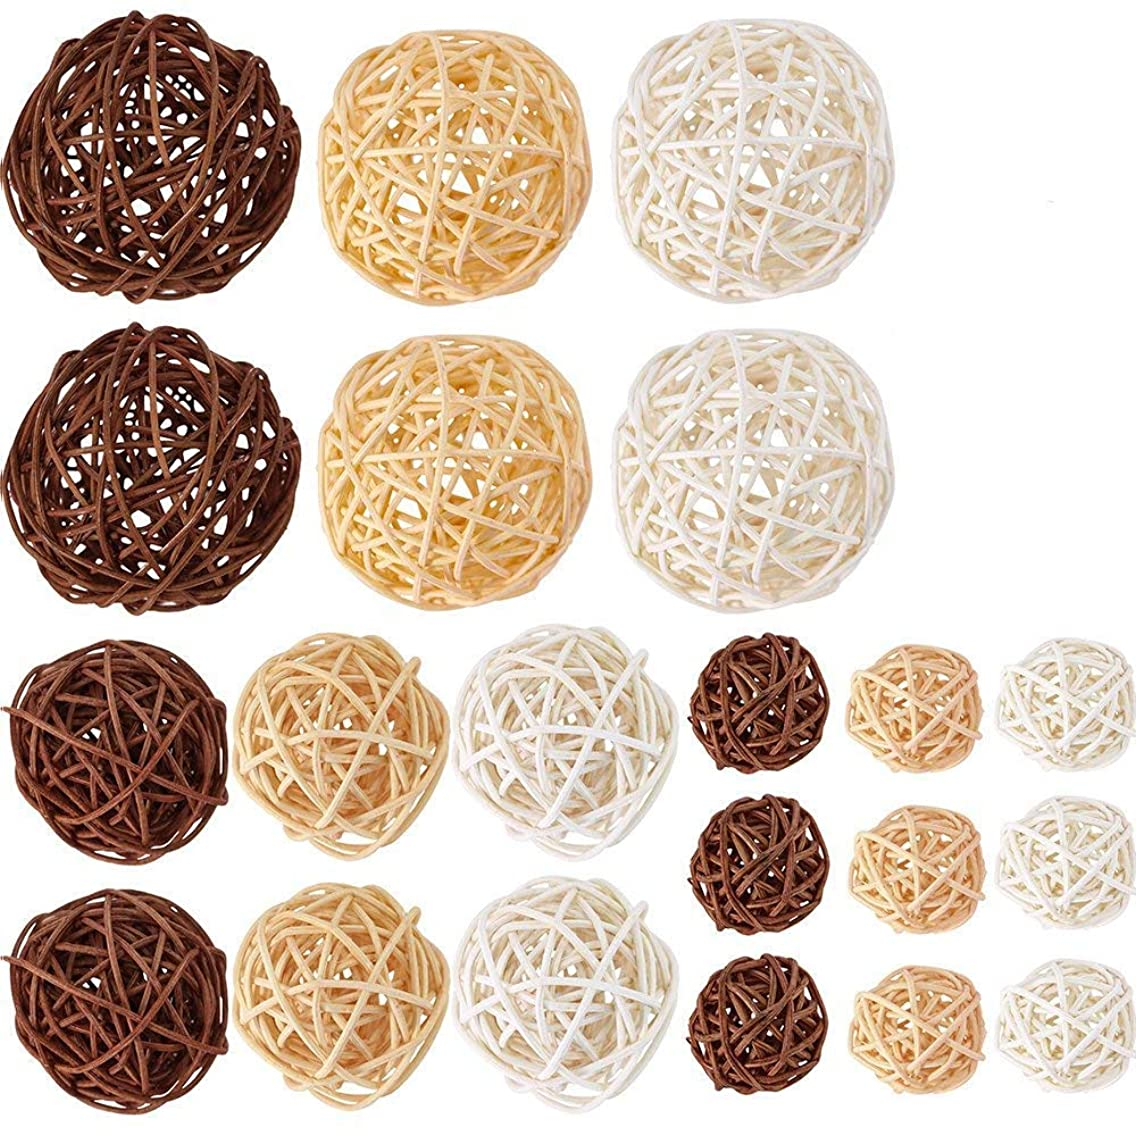 Supla 21 Pcs/lot Mixed 3 Colors Rattan wicker balls Vase Fillers for Wedding Party Christmas decoration, Assorted Three Size(3cm/5cm/7cm)